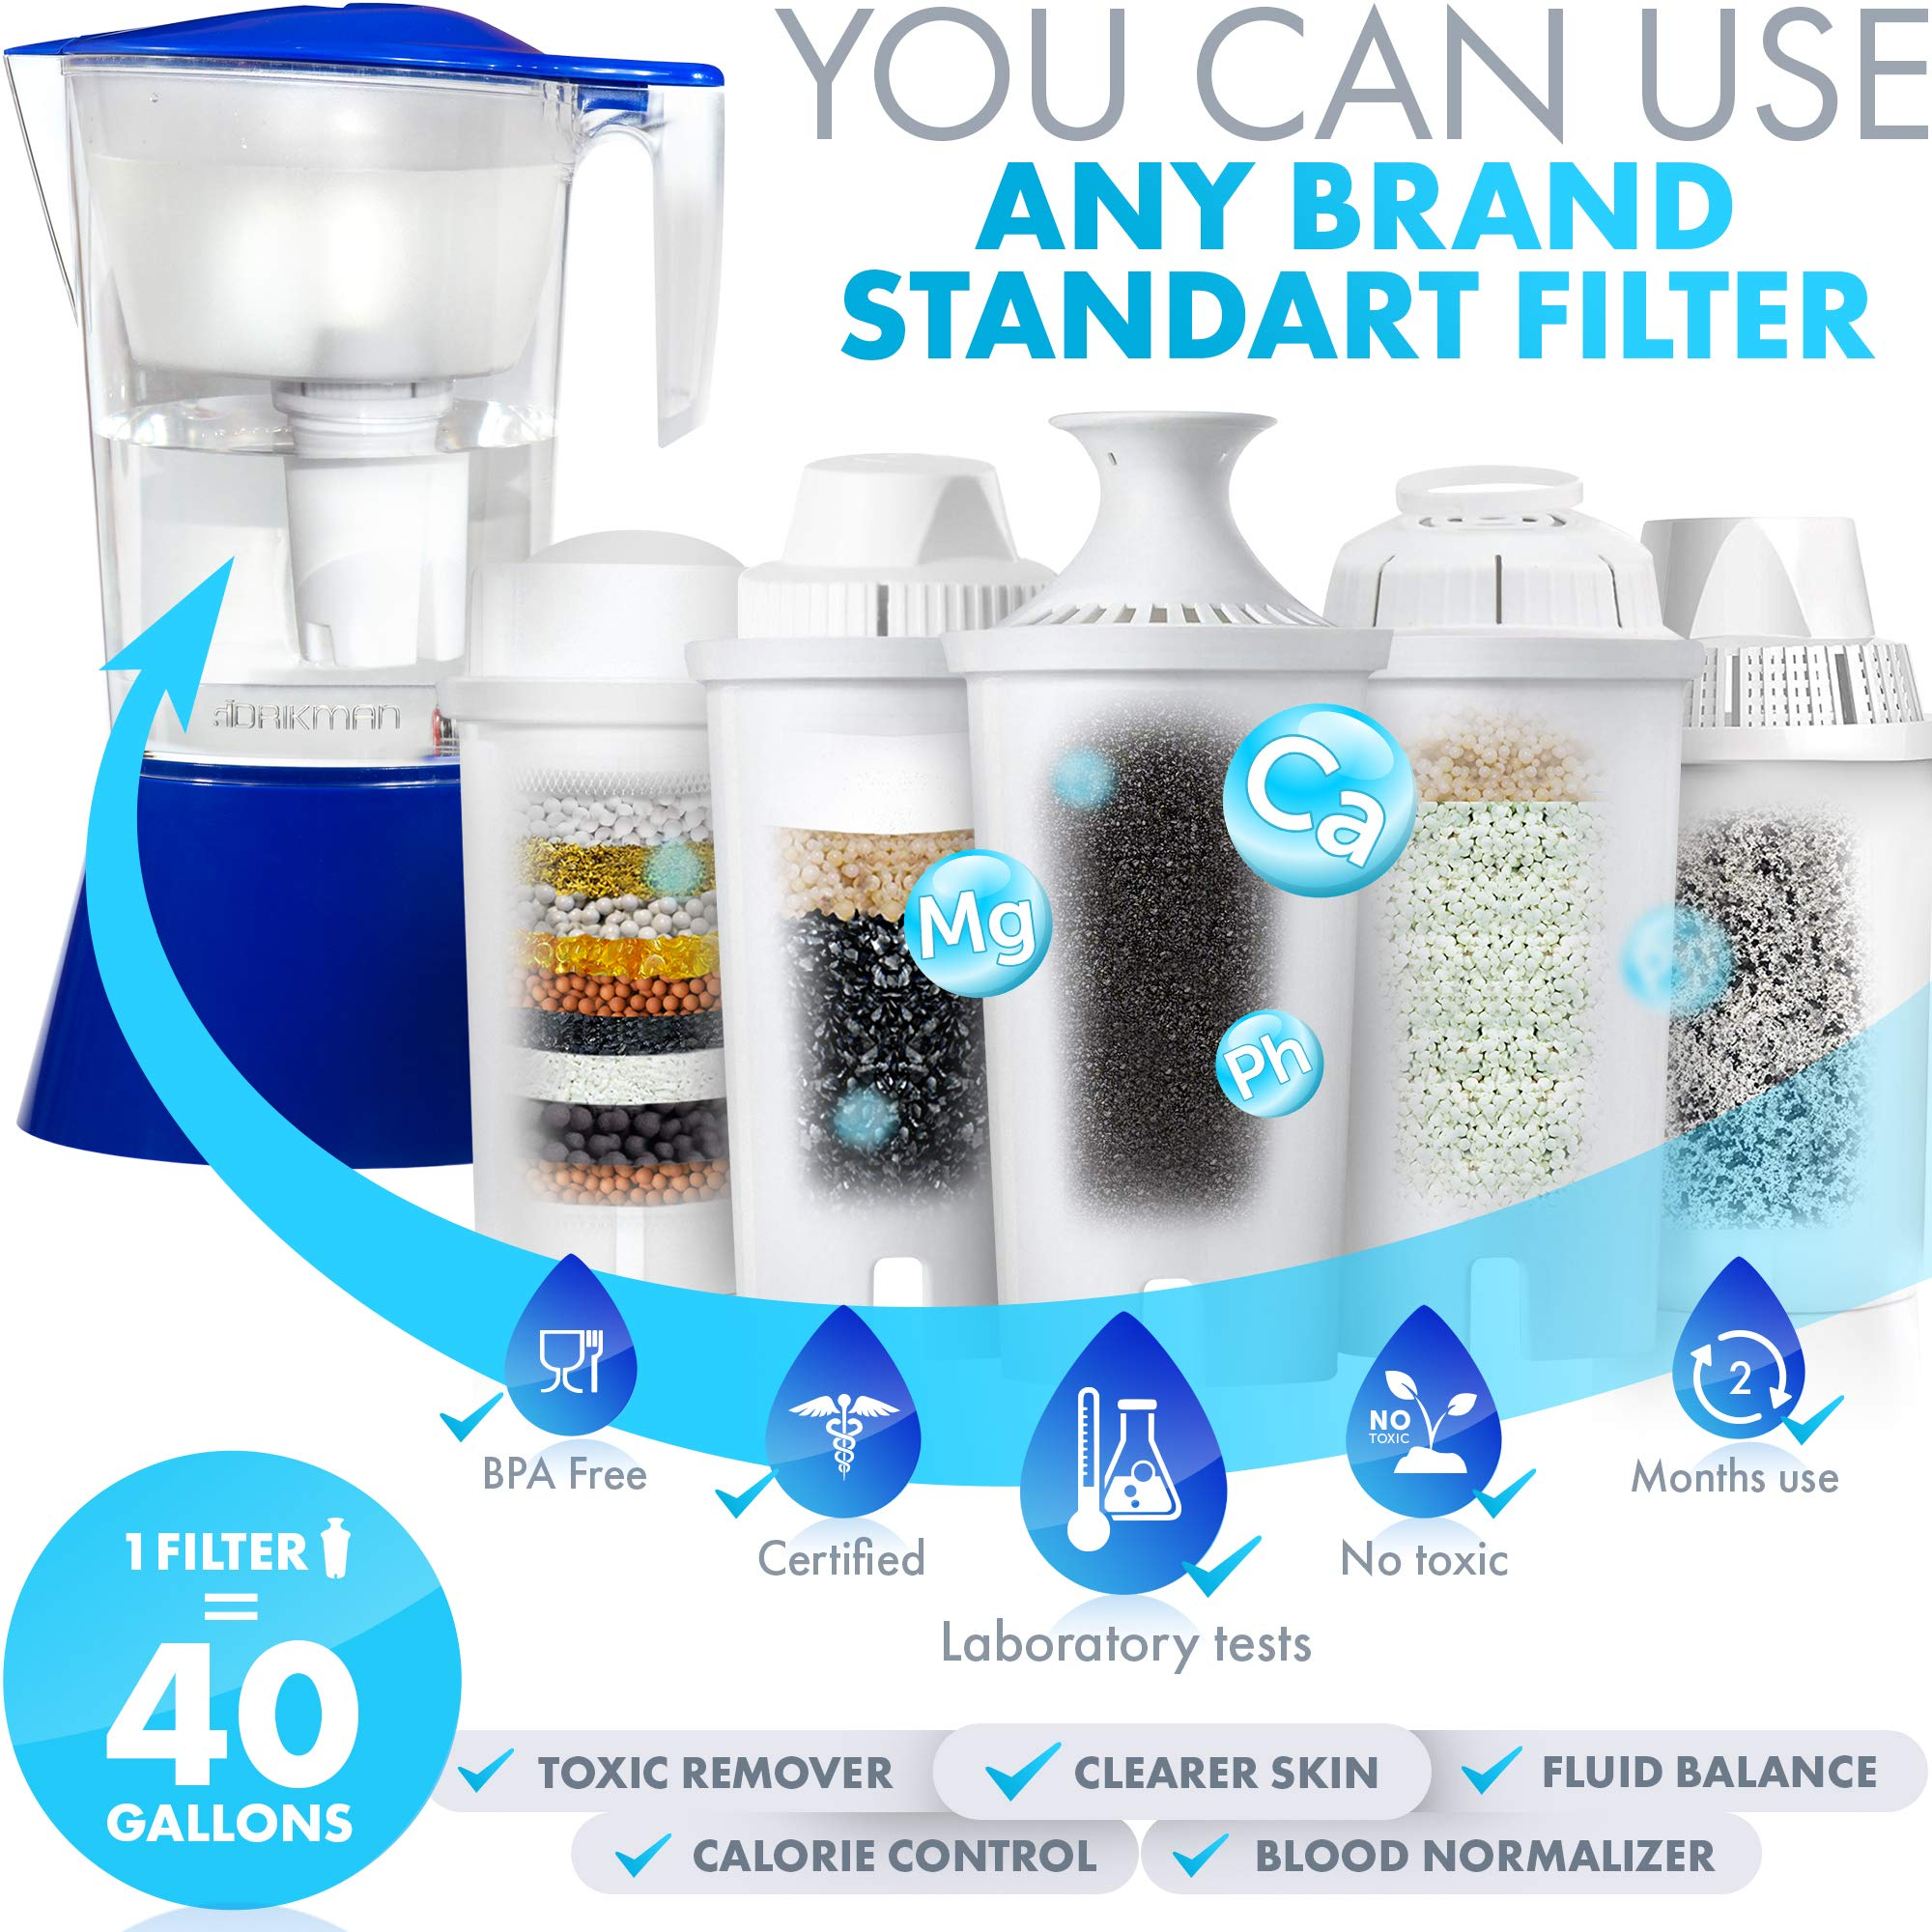 Filtered Water Pitchers DRIKMAN Universal Water Filter Pitcher 1 Gallon Pitcher Water Pitcher with Filter Water Purifier Pitcher Filtered Water Dispenser with Stand